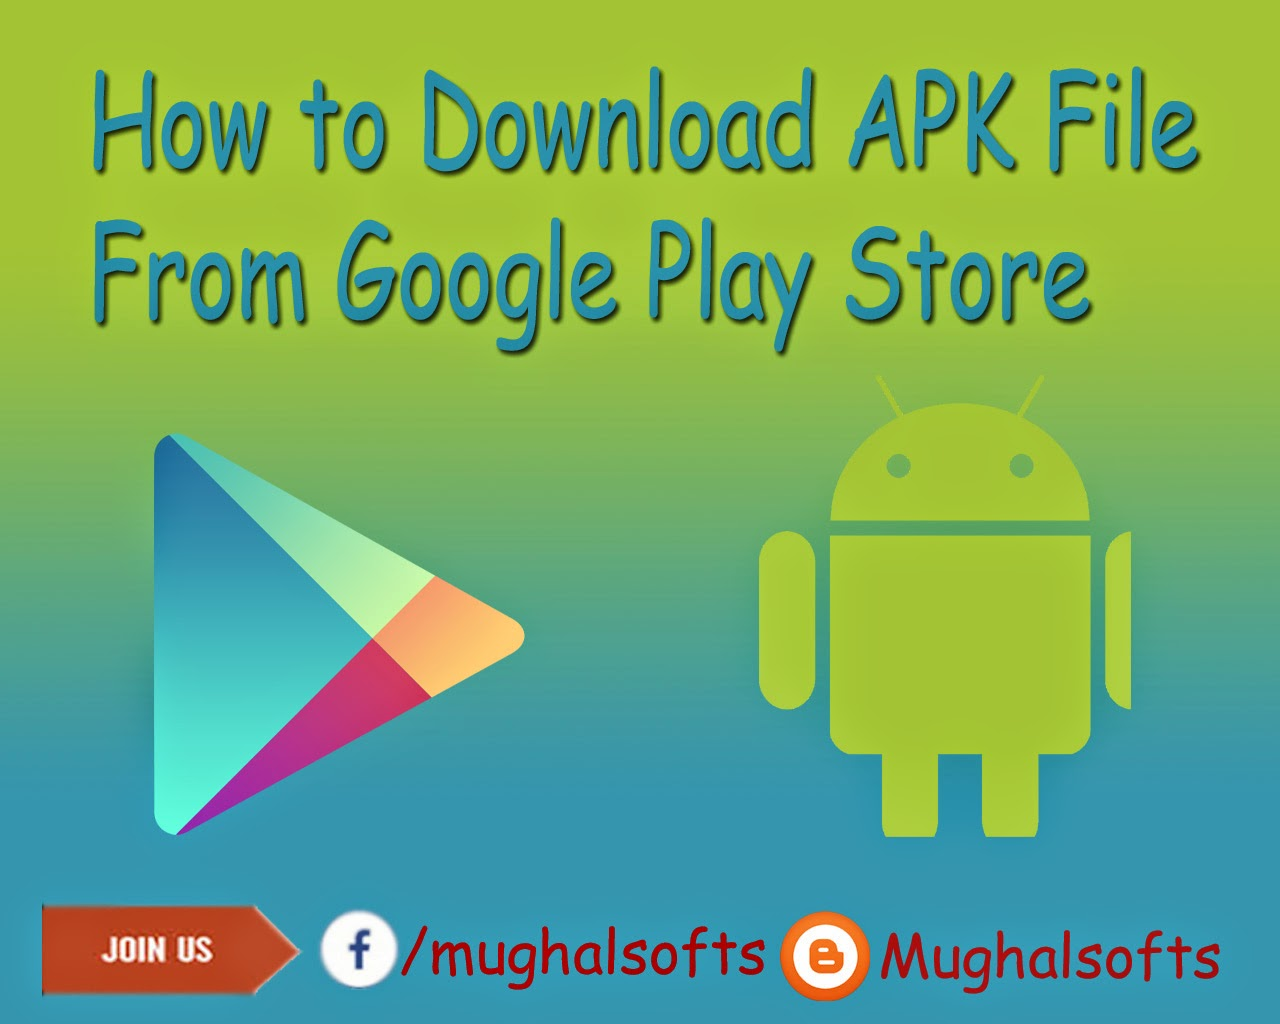 google play store file download